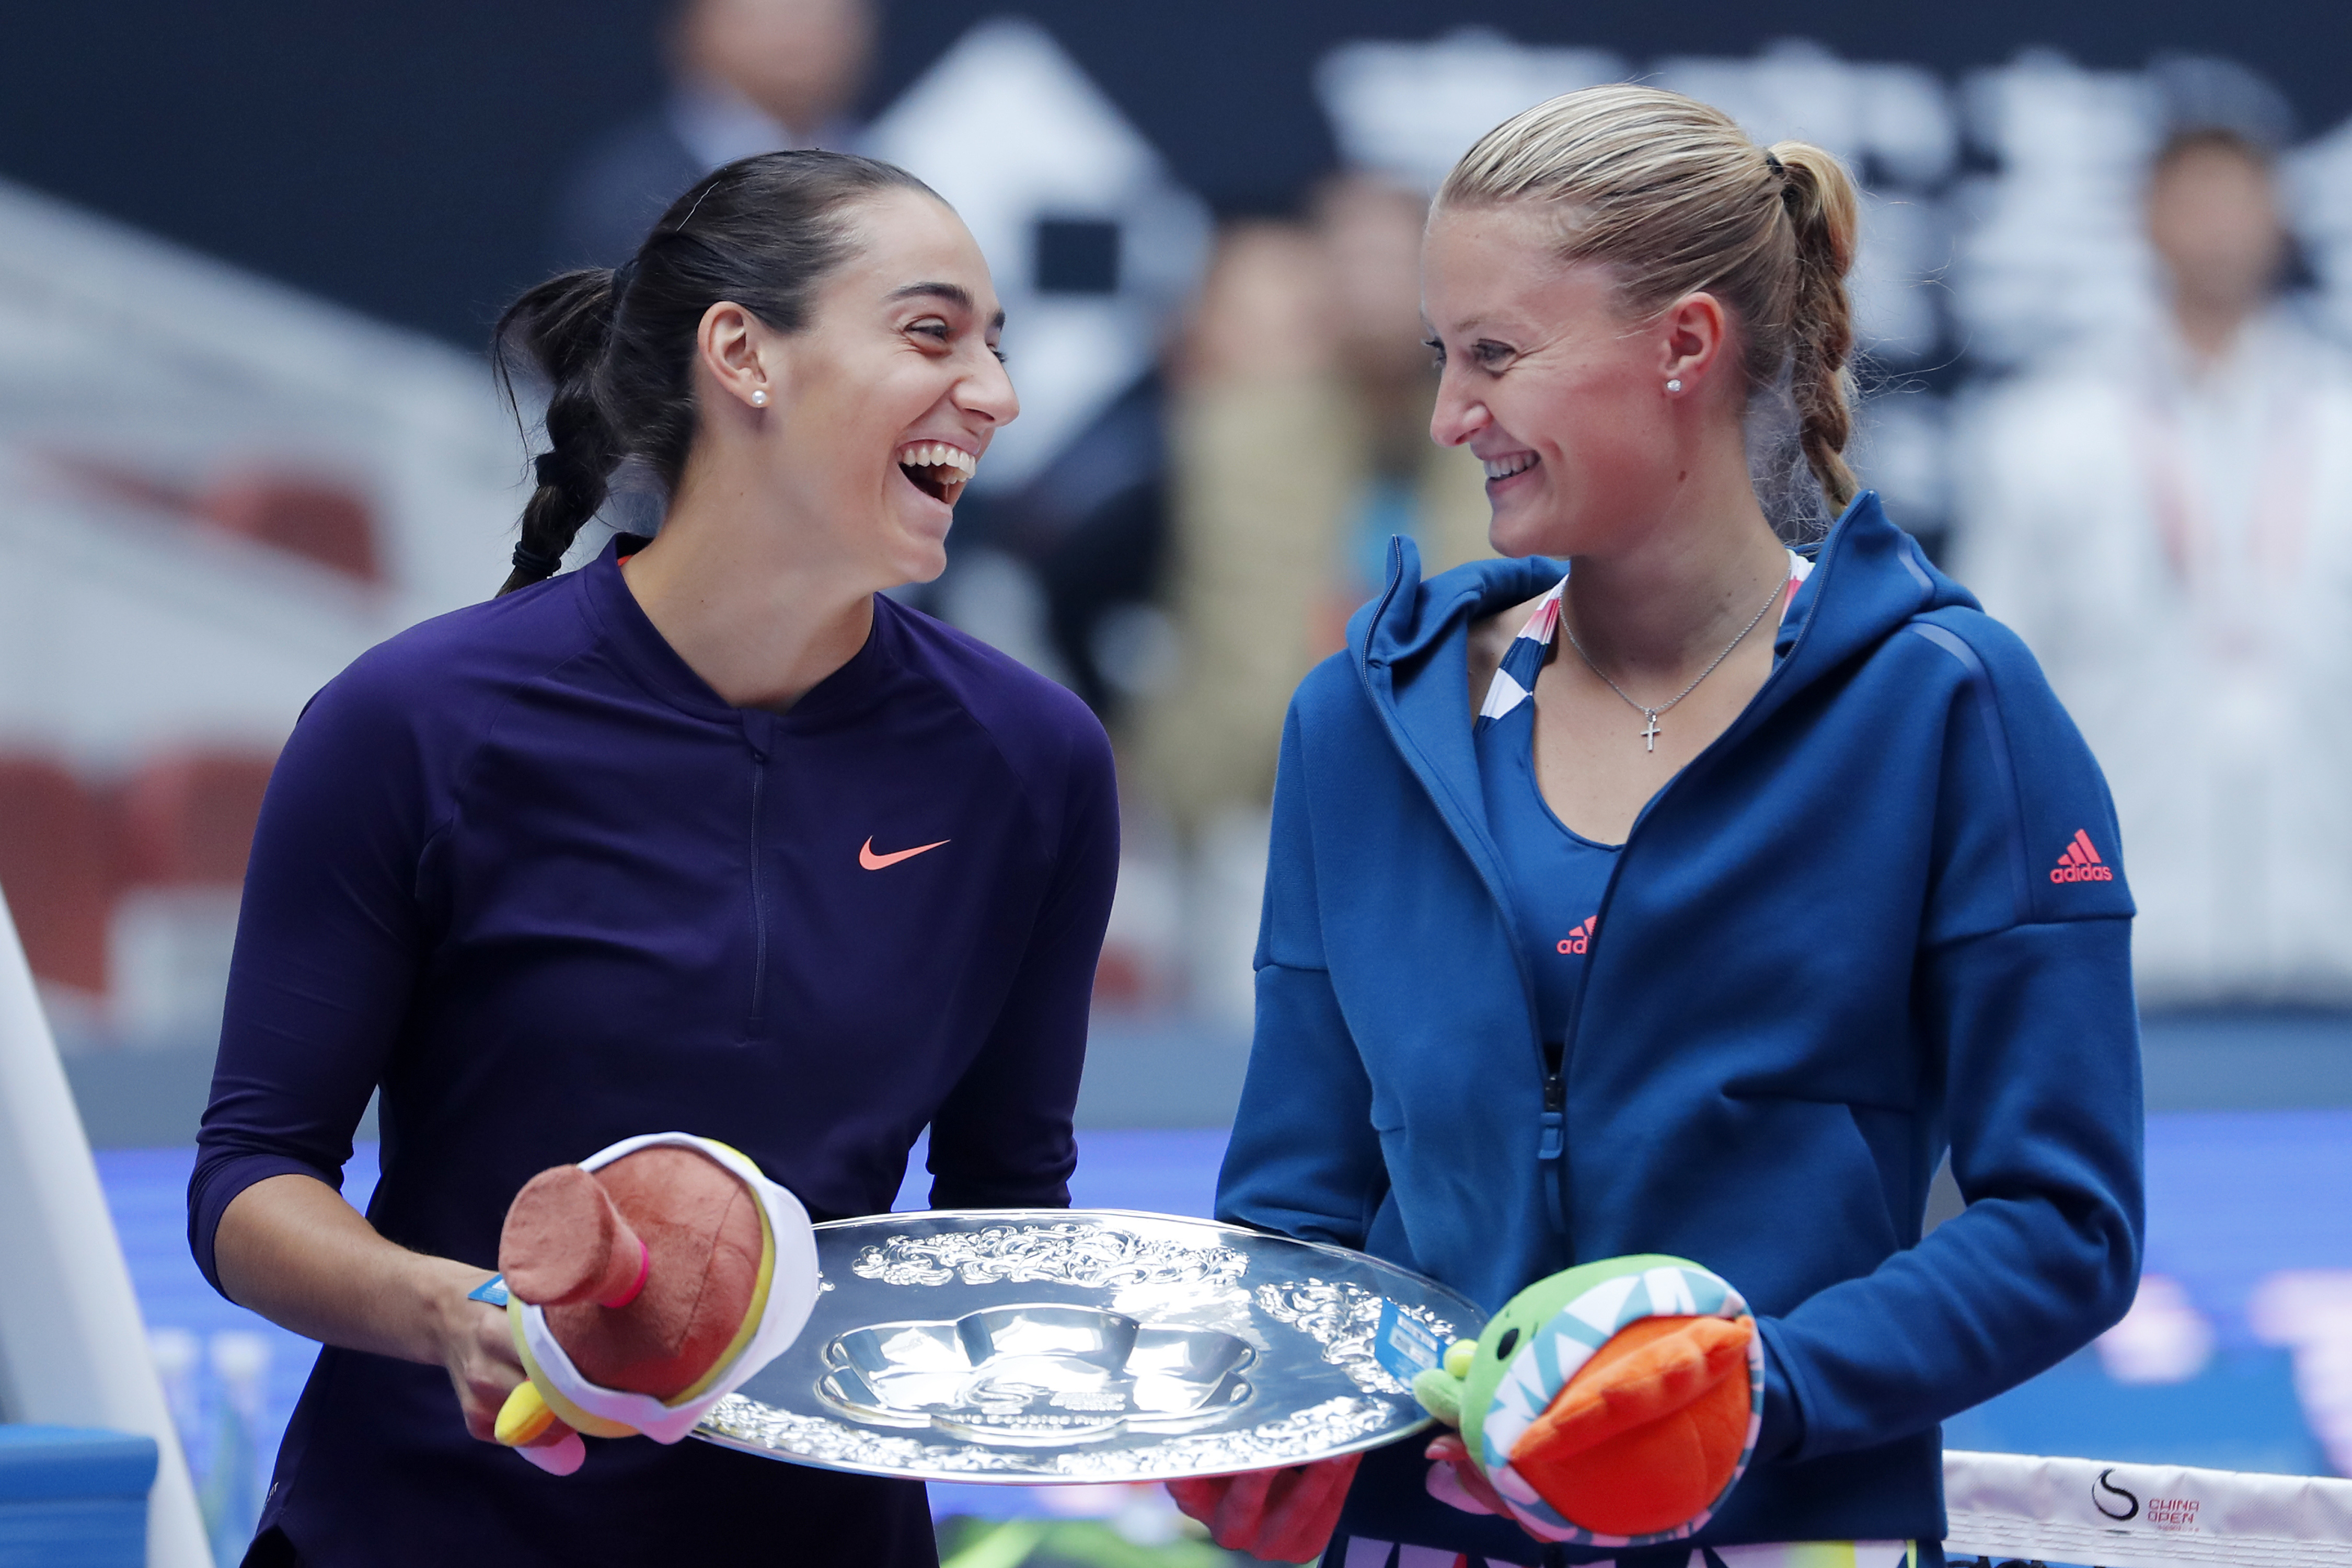 Caroline Garcia, left, and Kristina Mladenovic of France sharing a light moment with their trophy after losing to Lucie Safarova of the Czech Republic, left, and Bethanie Mattek-Sands of the United States in the women's doubles final match of the China Op